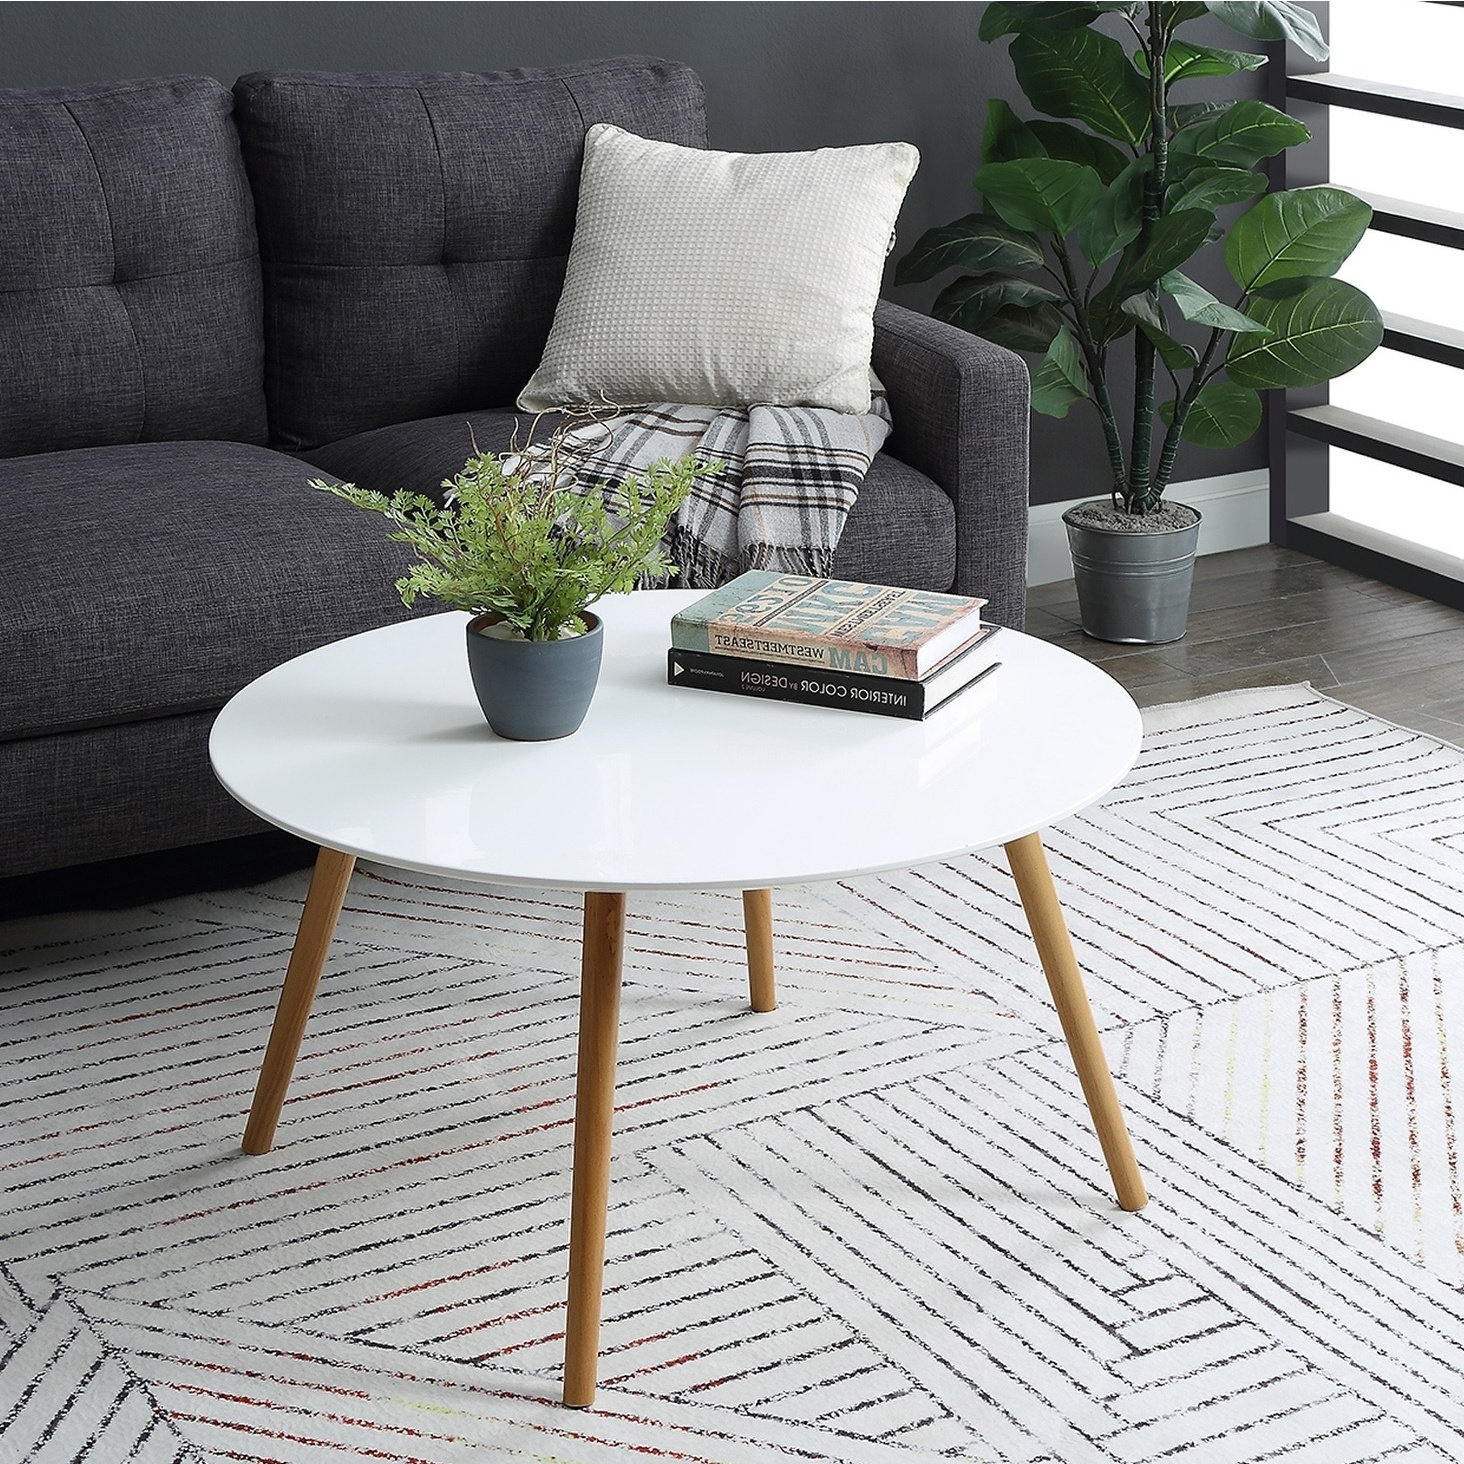 Carson Carrington Tallinn Round Coffee Table, White In 2019 Within Most Current Carson Carrington Arendal Guitar Pick Nesting Coffee Tables (View 10 of 20)